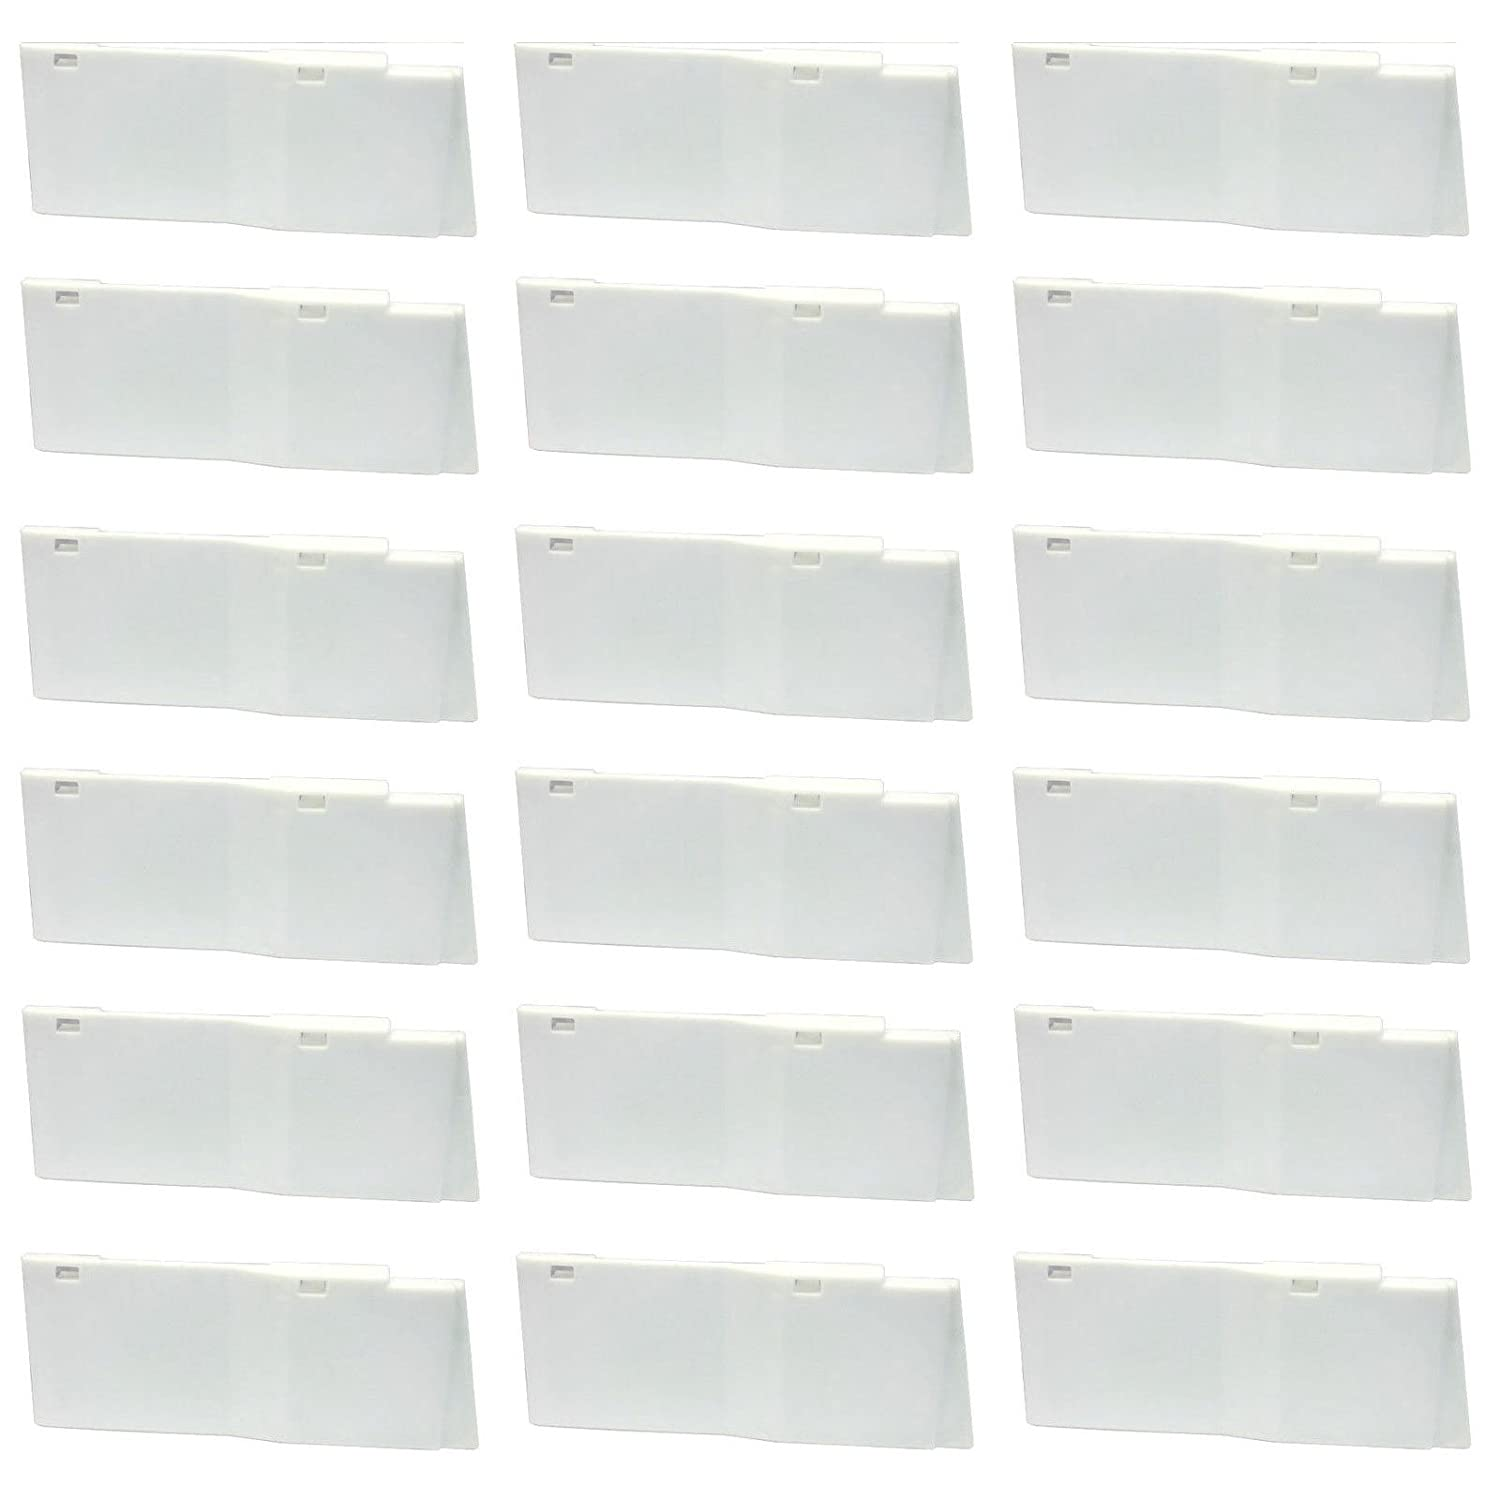 Dixie Narco Dealing full price reduction 20oz Bottle Shims for Front Machi Vending Glass 5591 Industry No. 1